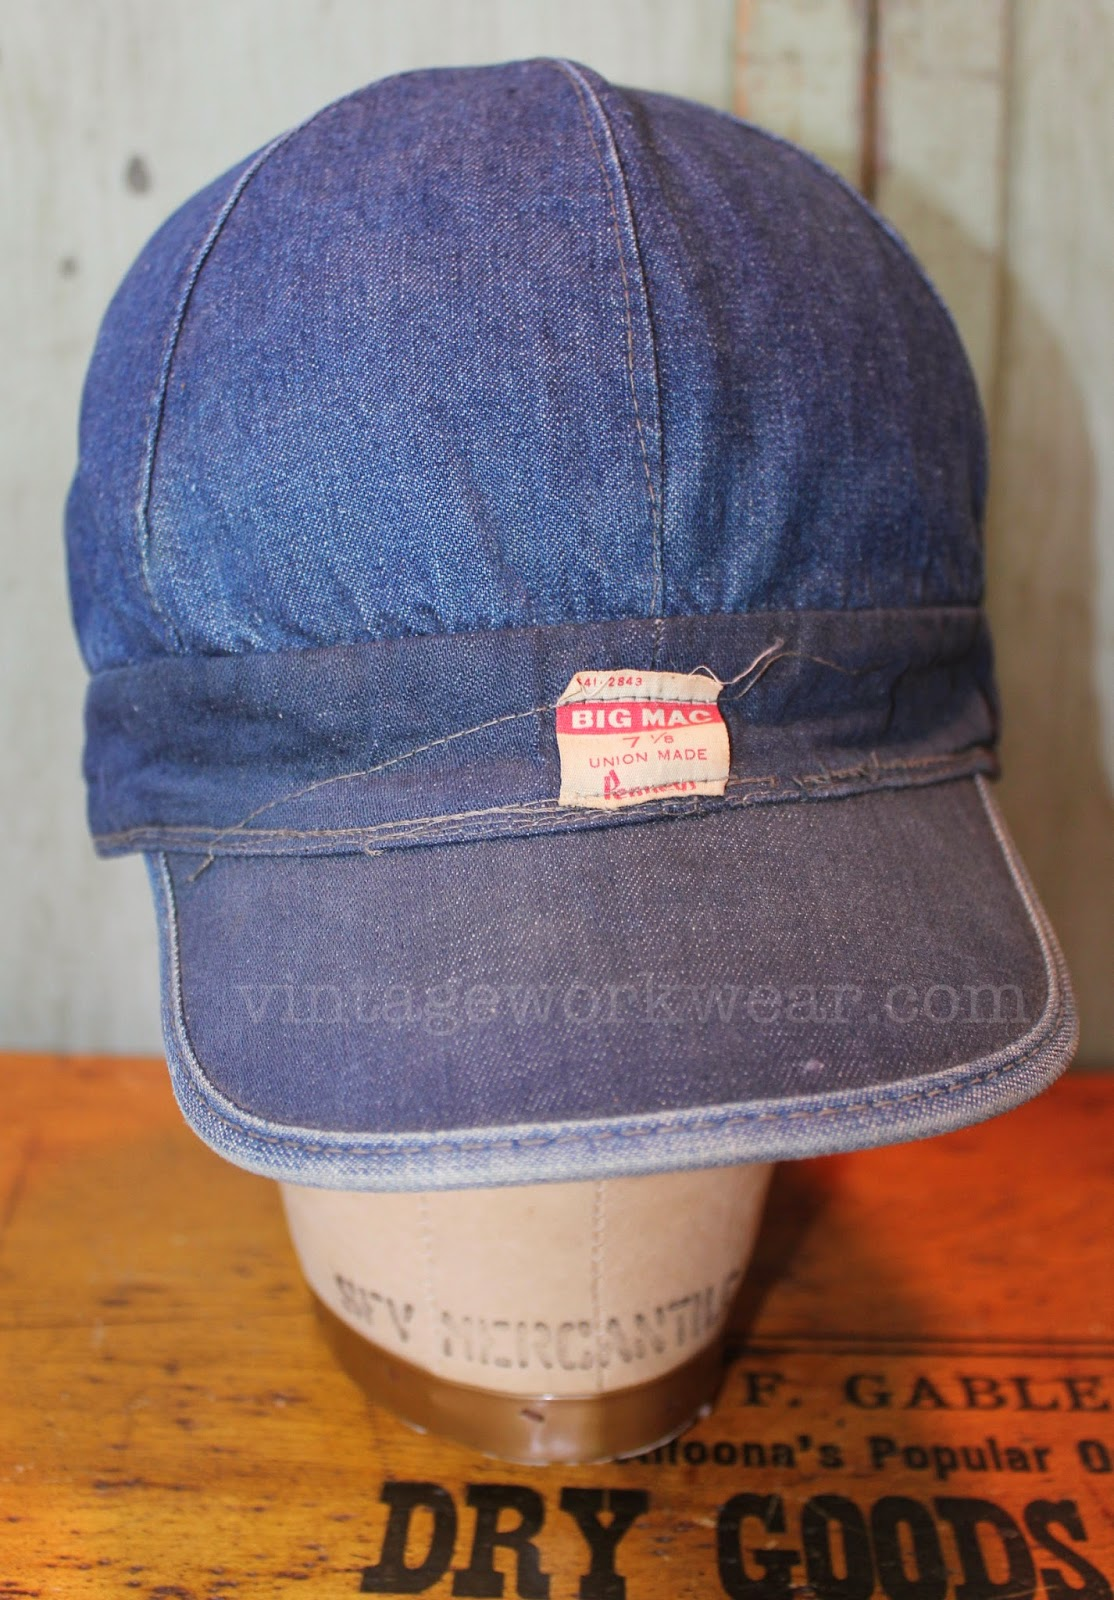 Vintage workwear the variation of fading seen on the different types of denim used to construct this cap result in an almost two tone appearance pronofoot35fo Gallery